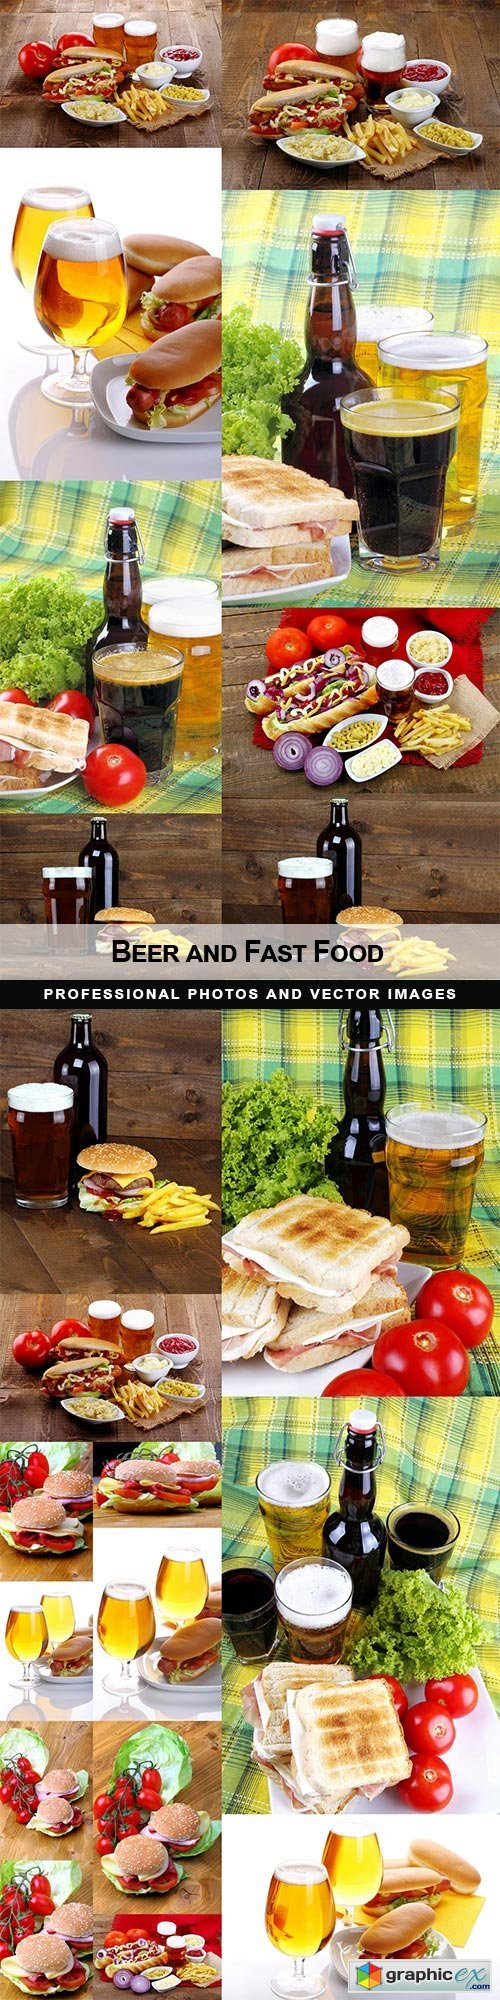 Beer and Fast Food